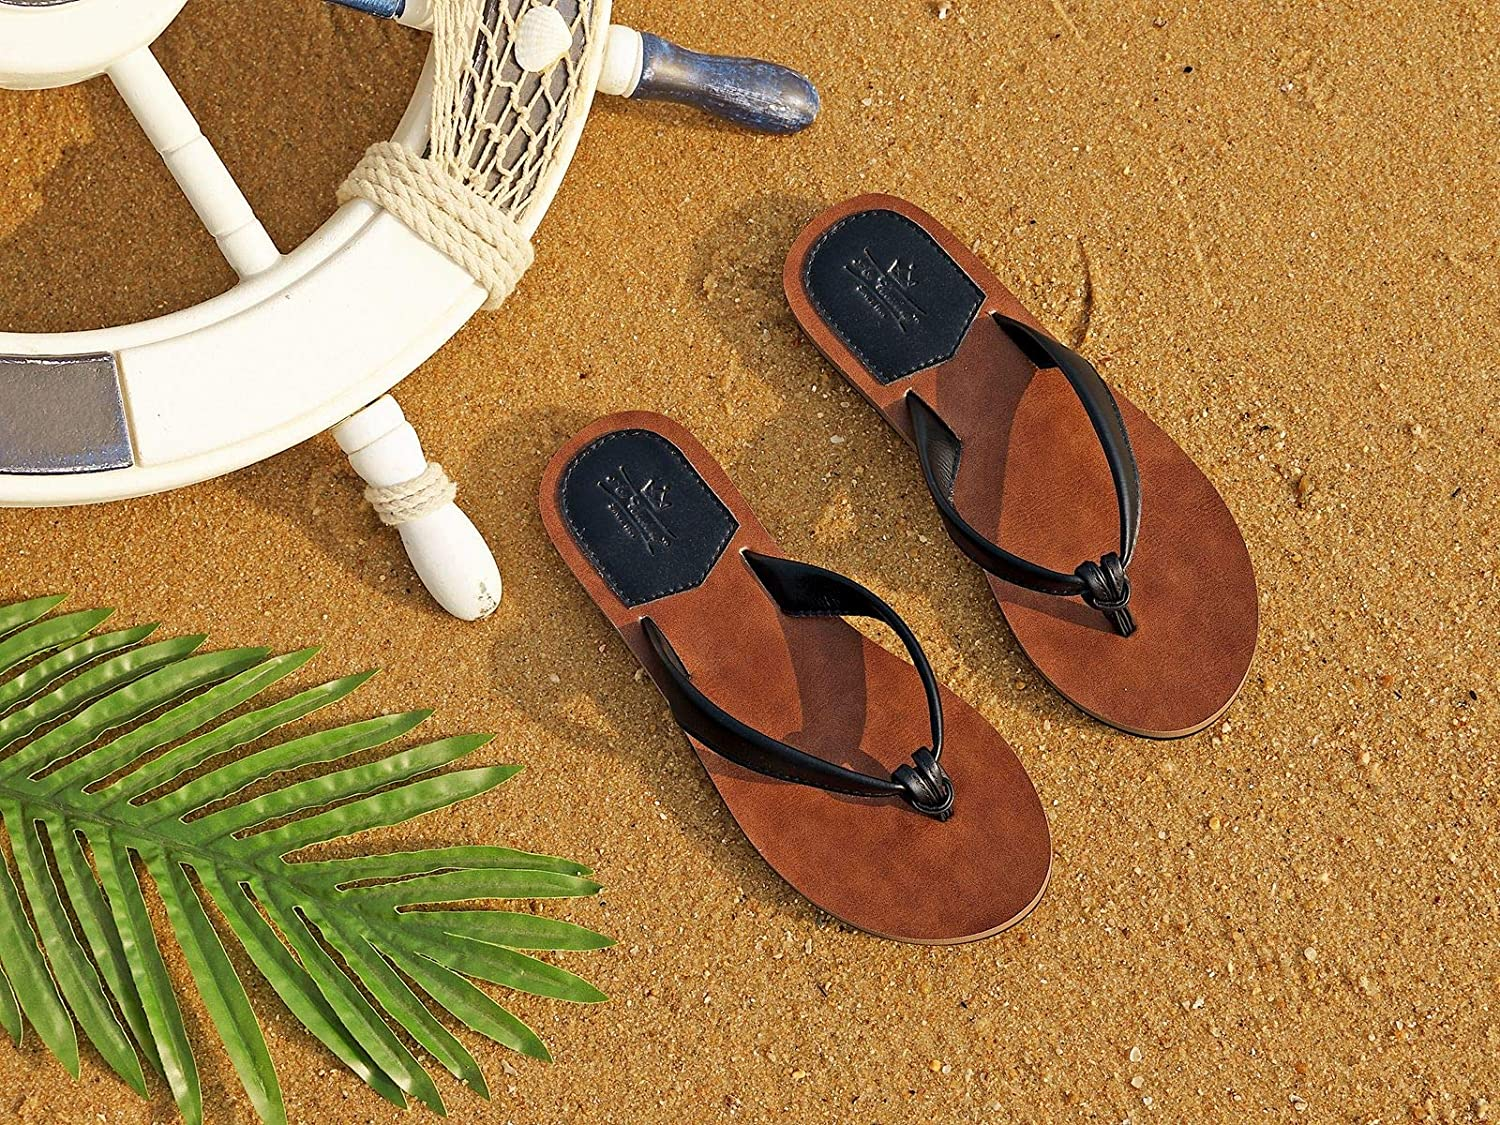 Brown, Numeric/_6 AX BOXING Flip Flops for Women Chic Simple PU Leather Sandals Slippers Sliders Soft Non-Slip Summer Beach Pool Indoor Outdoor Size 4-7